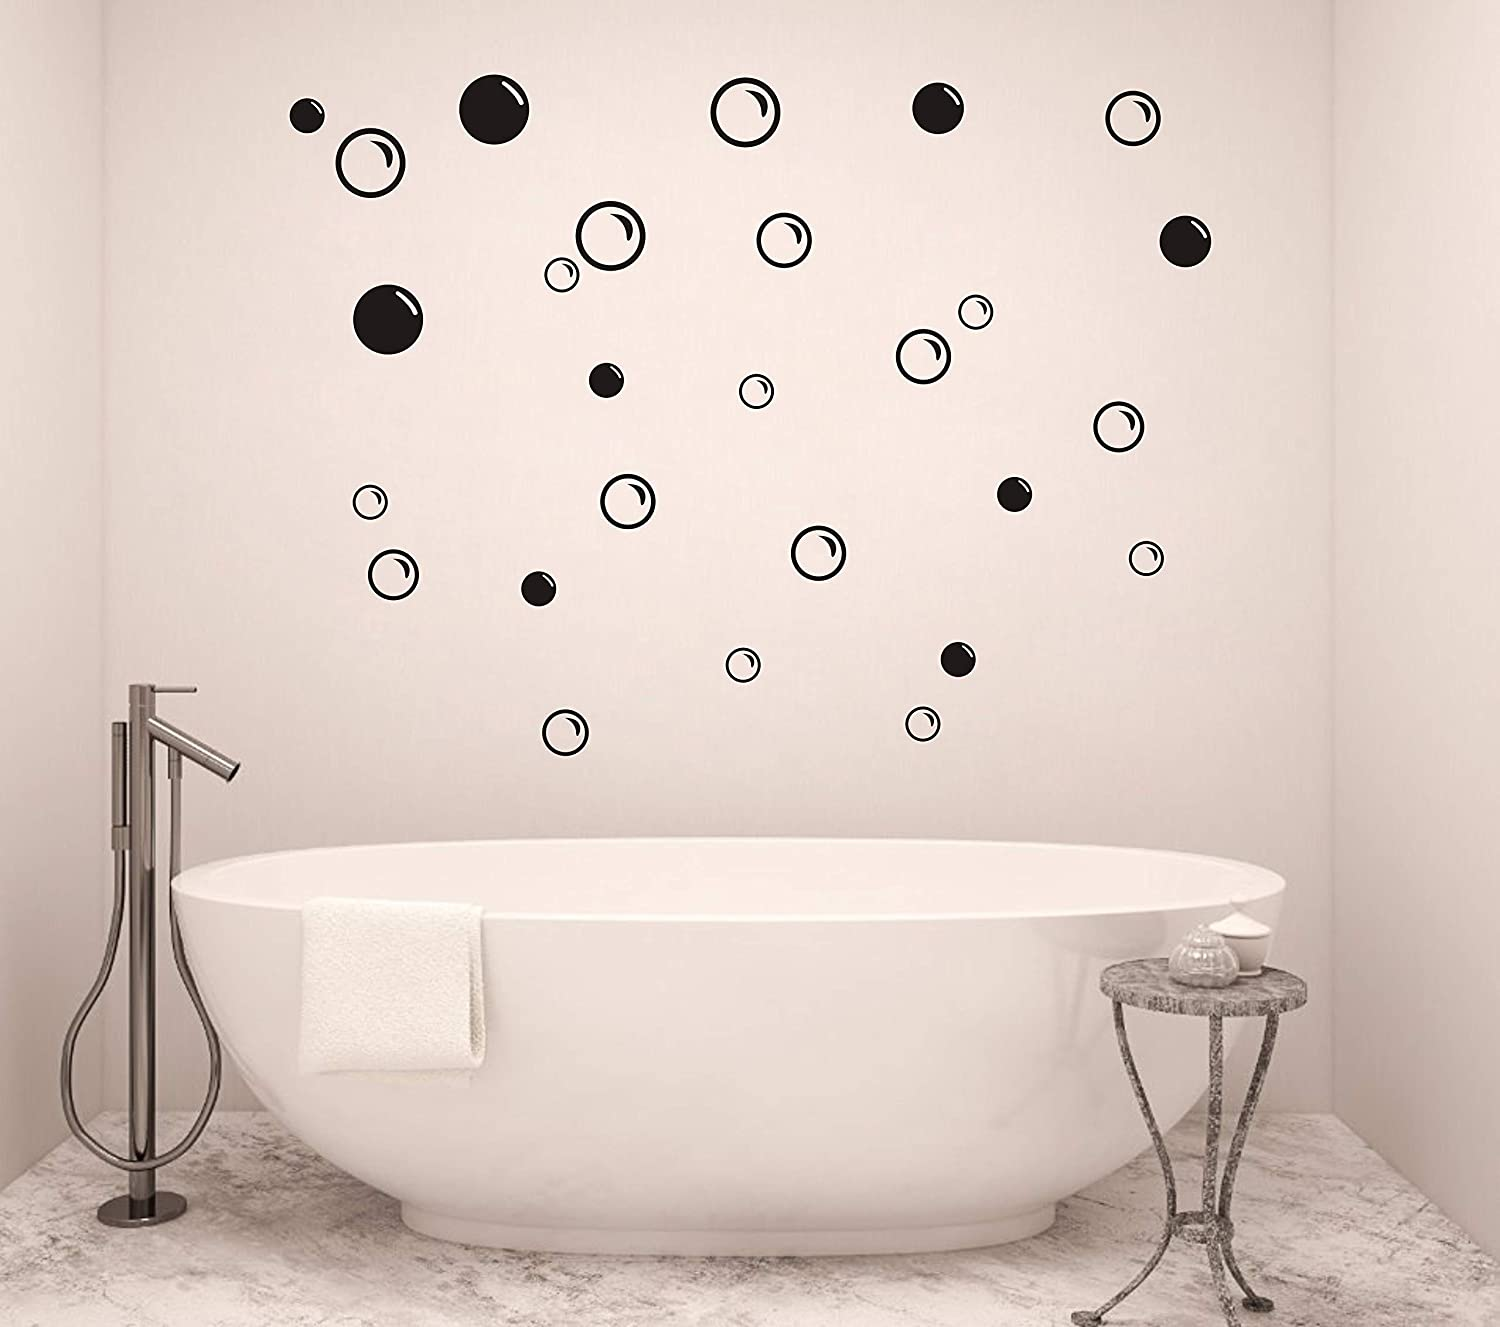 90 Large Soap Bubbles Wall Decals, Bathroom Decals, Wall Art, Vinyl Stivkers for Bathroom, Bedroom, Nursery Decor(A35) (Black)